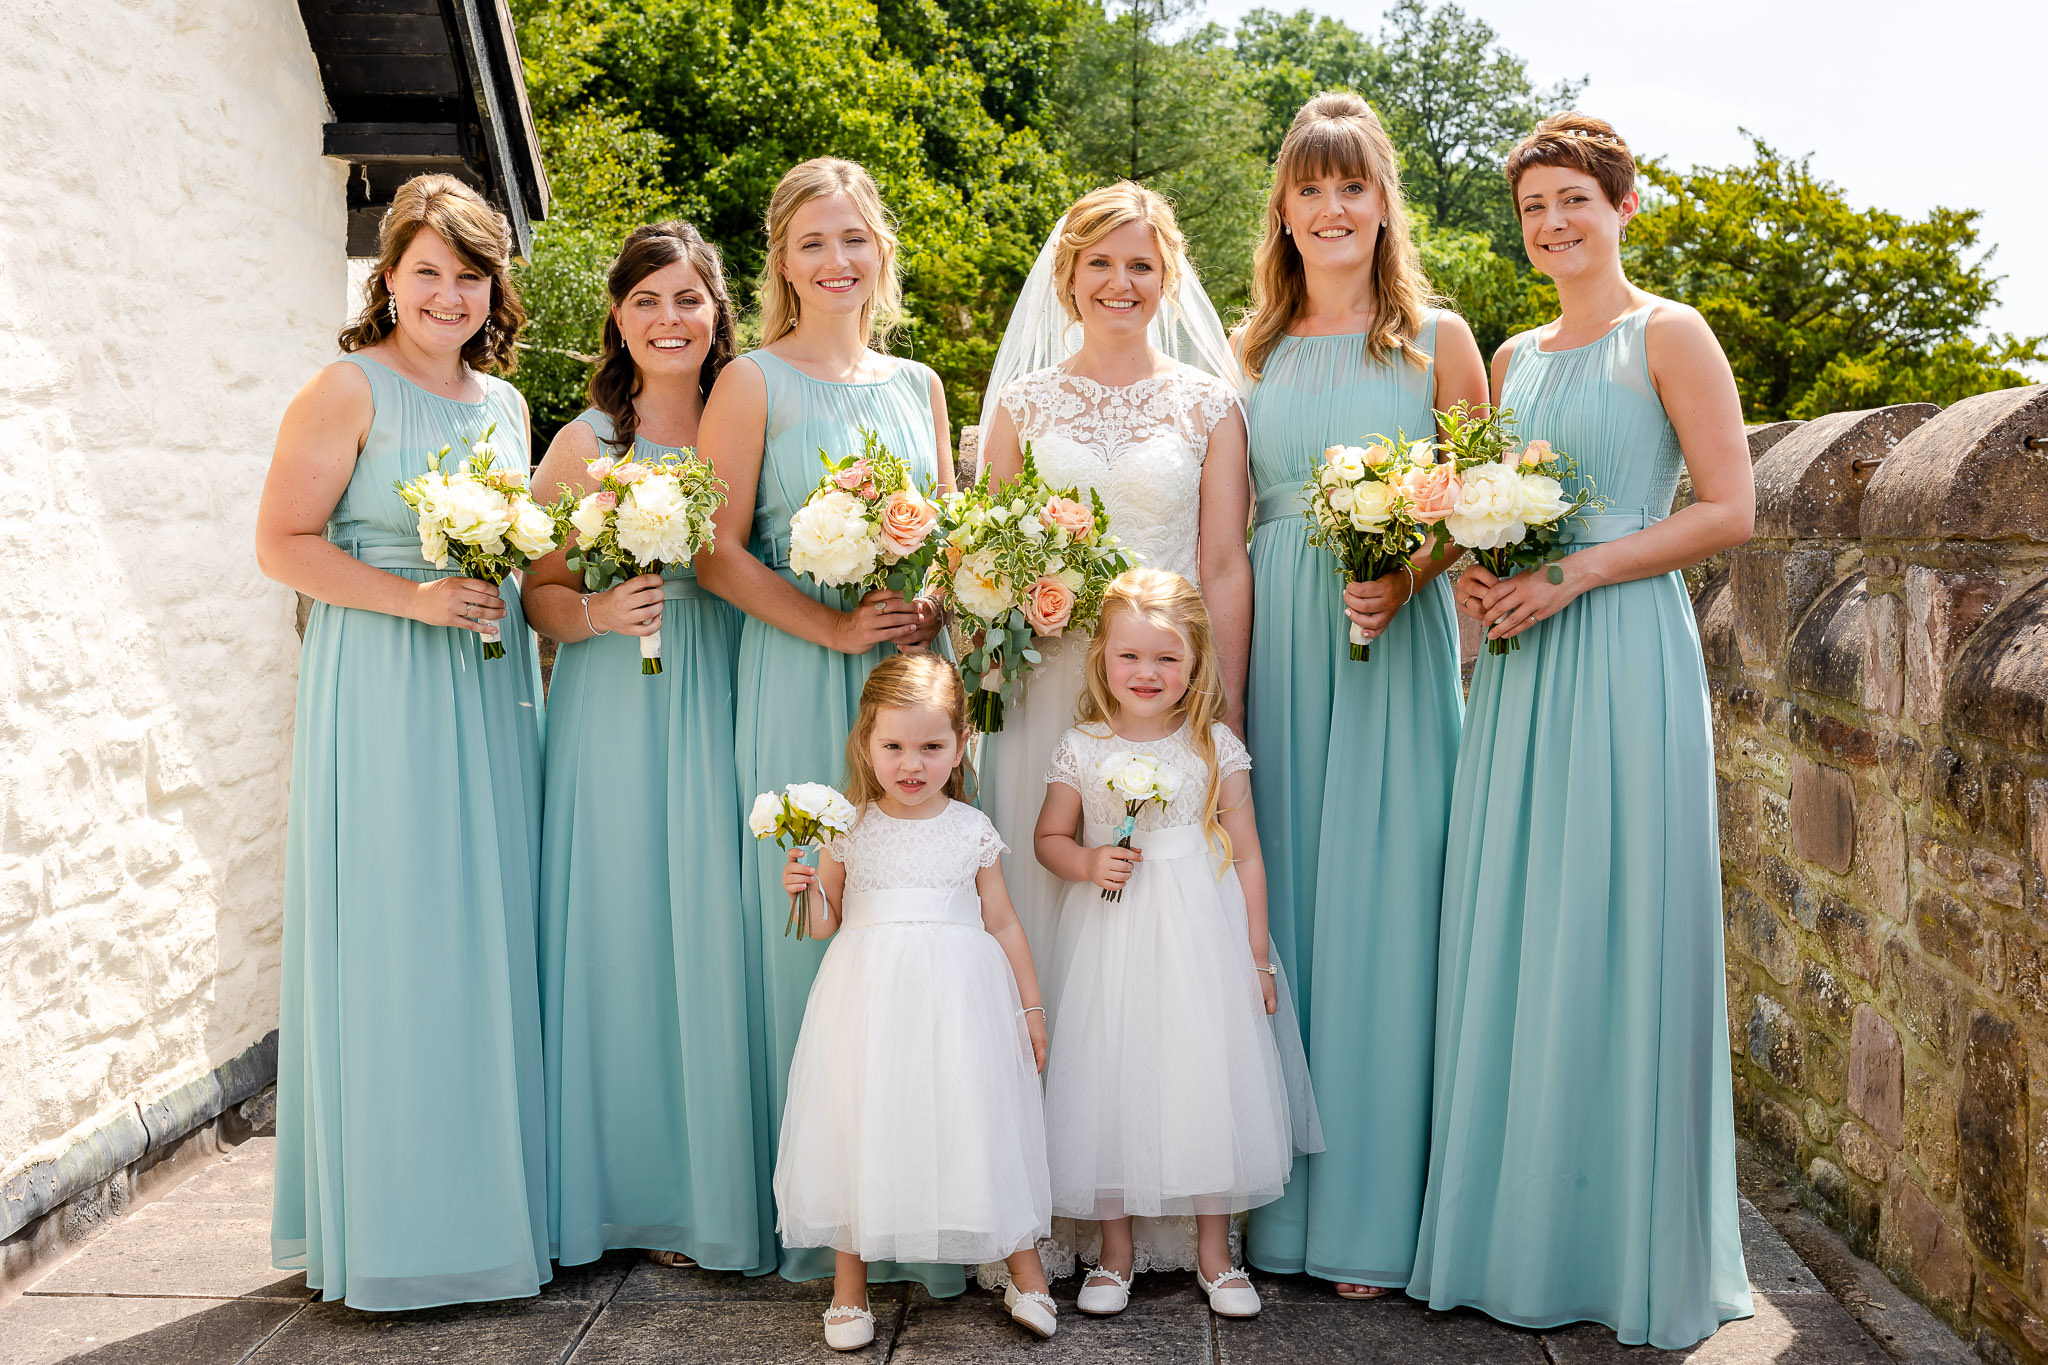 Art by Design - Caer Llan Wedding Photography - Bride and Bridesmaids